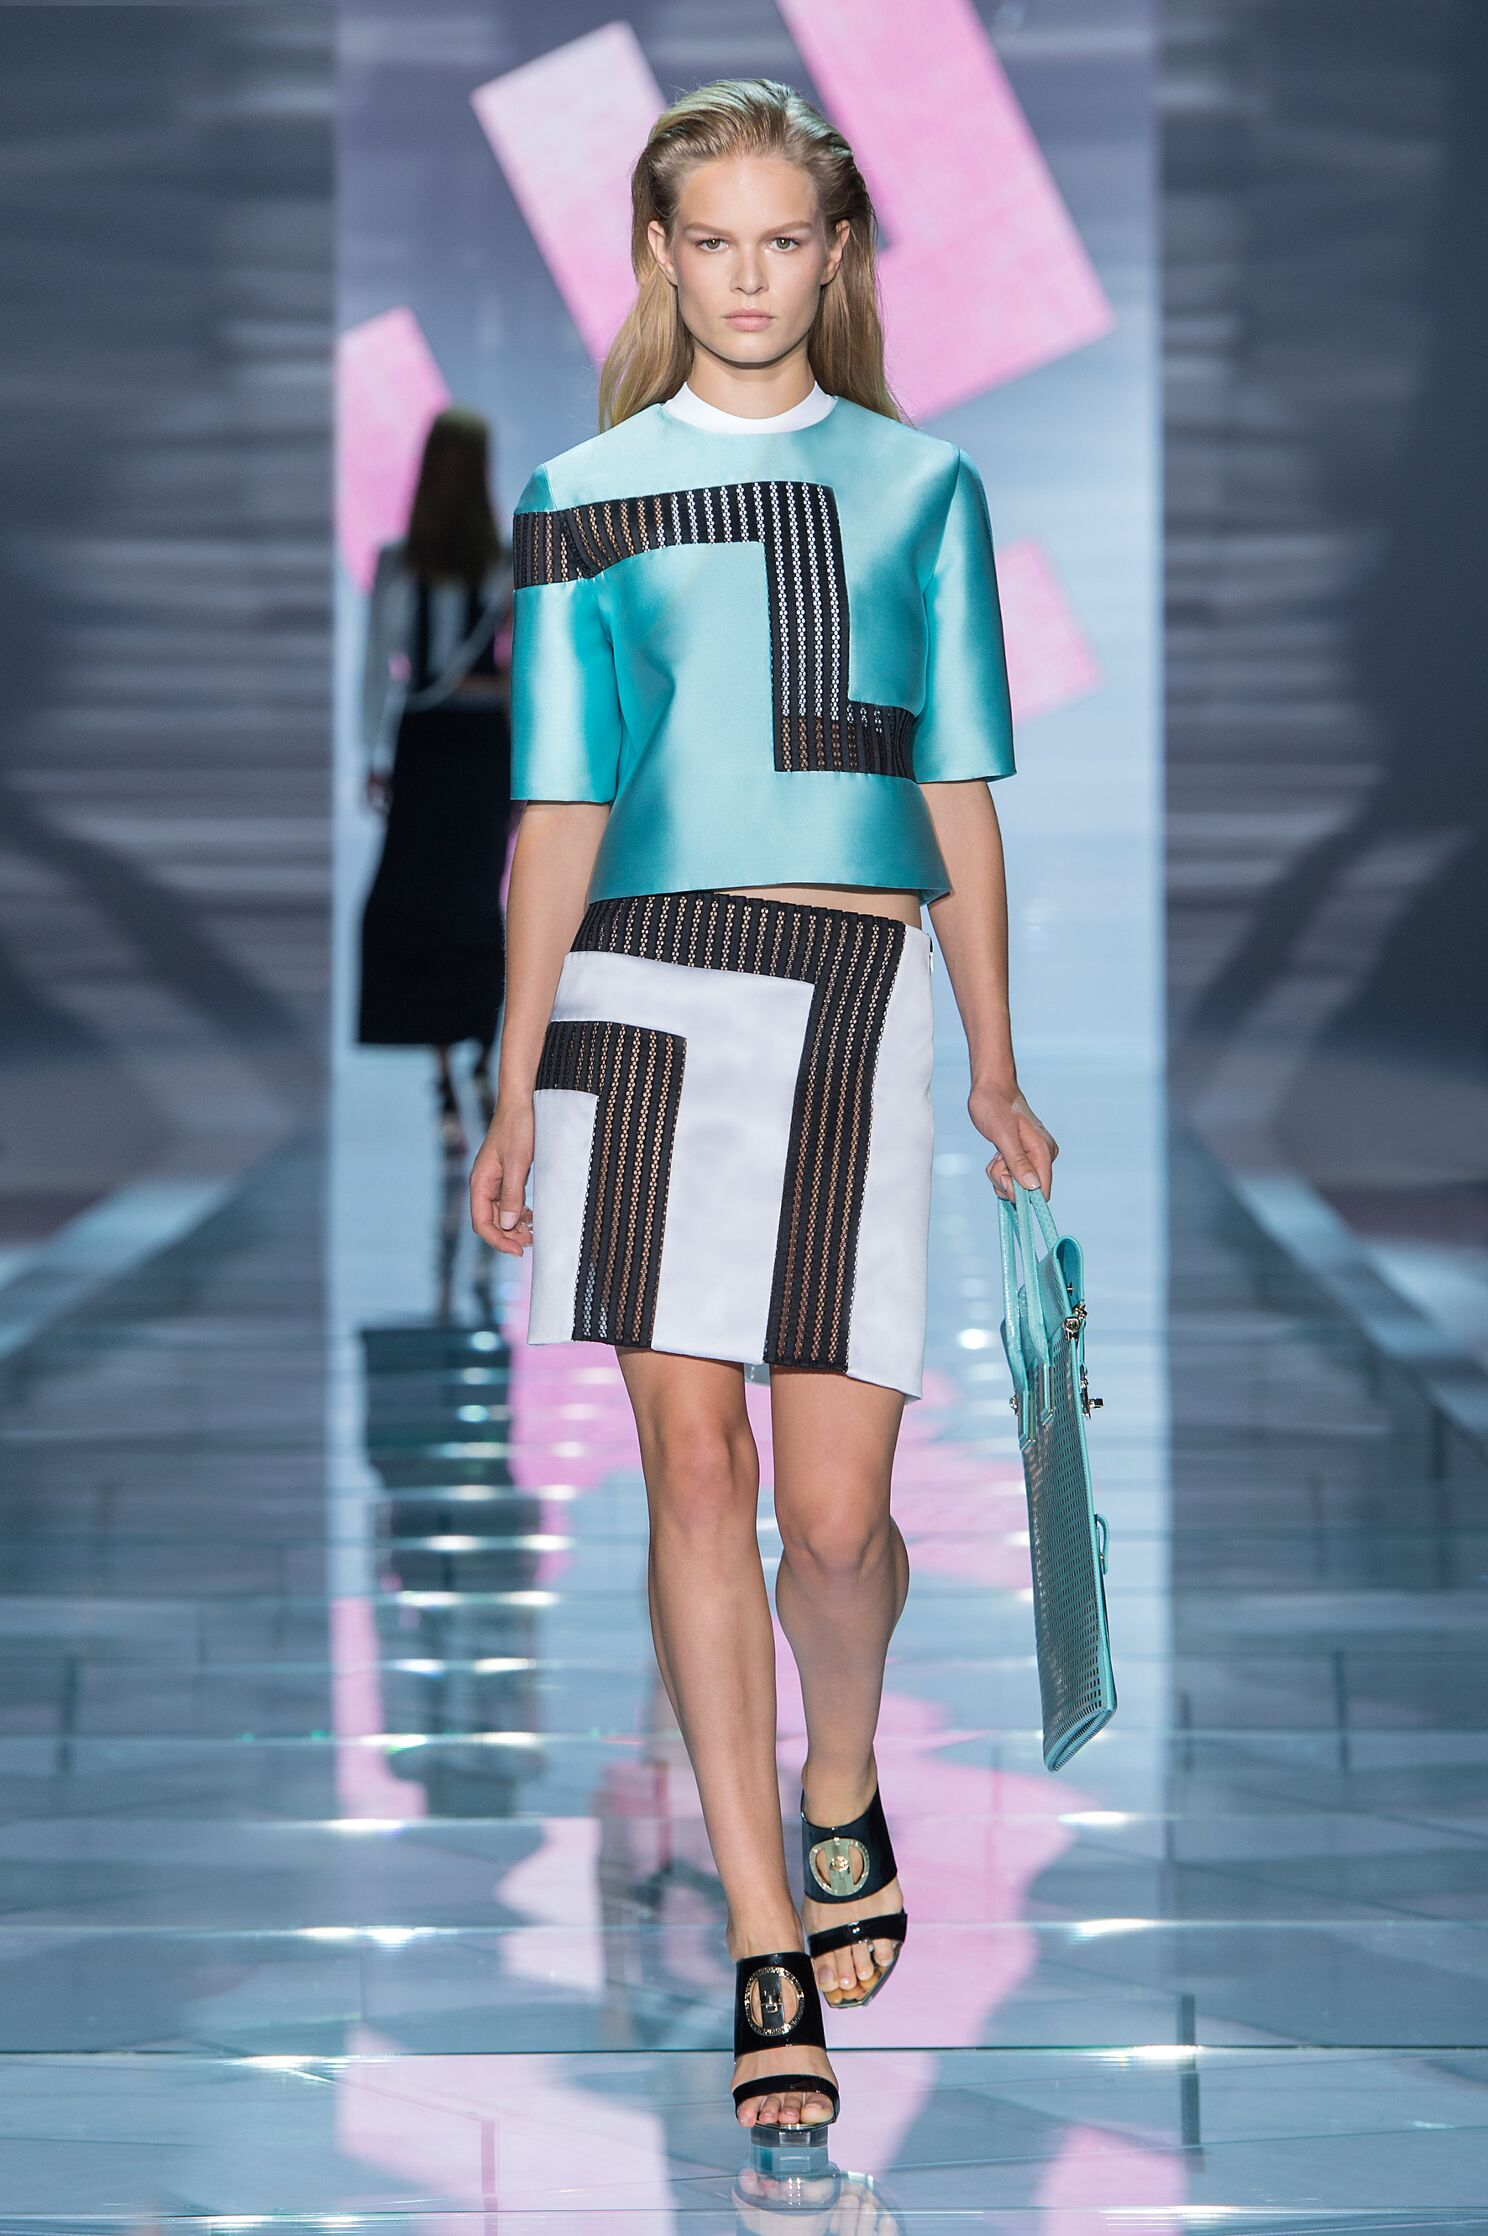 Fashion Trends: VERSACE SPRING SUMMER 2015 WOMEN'S COLLECTION